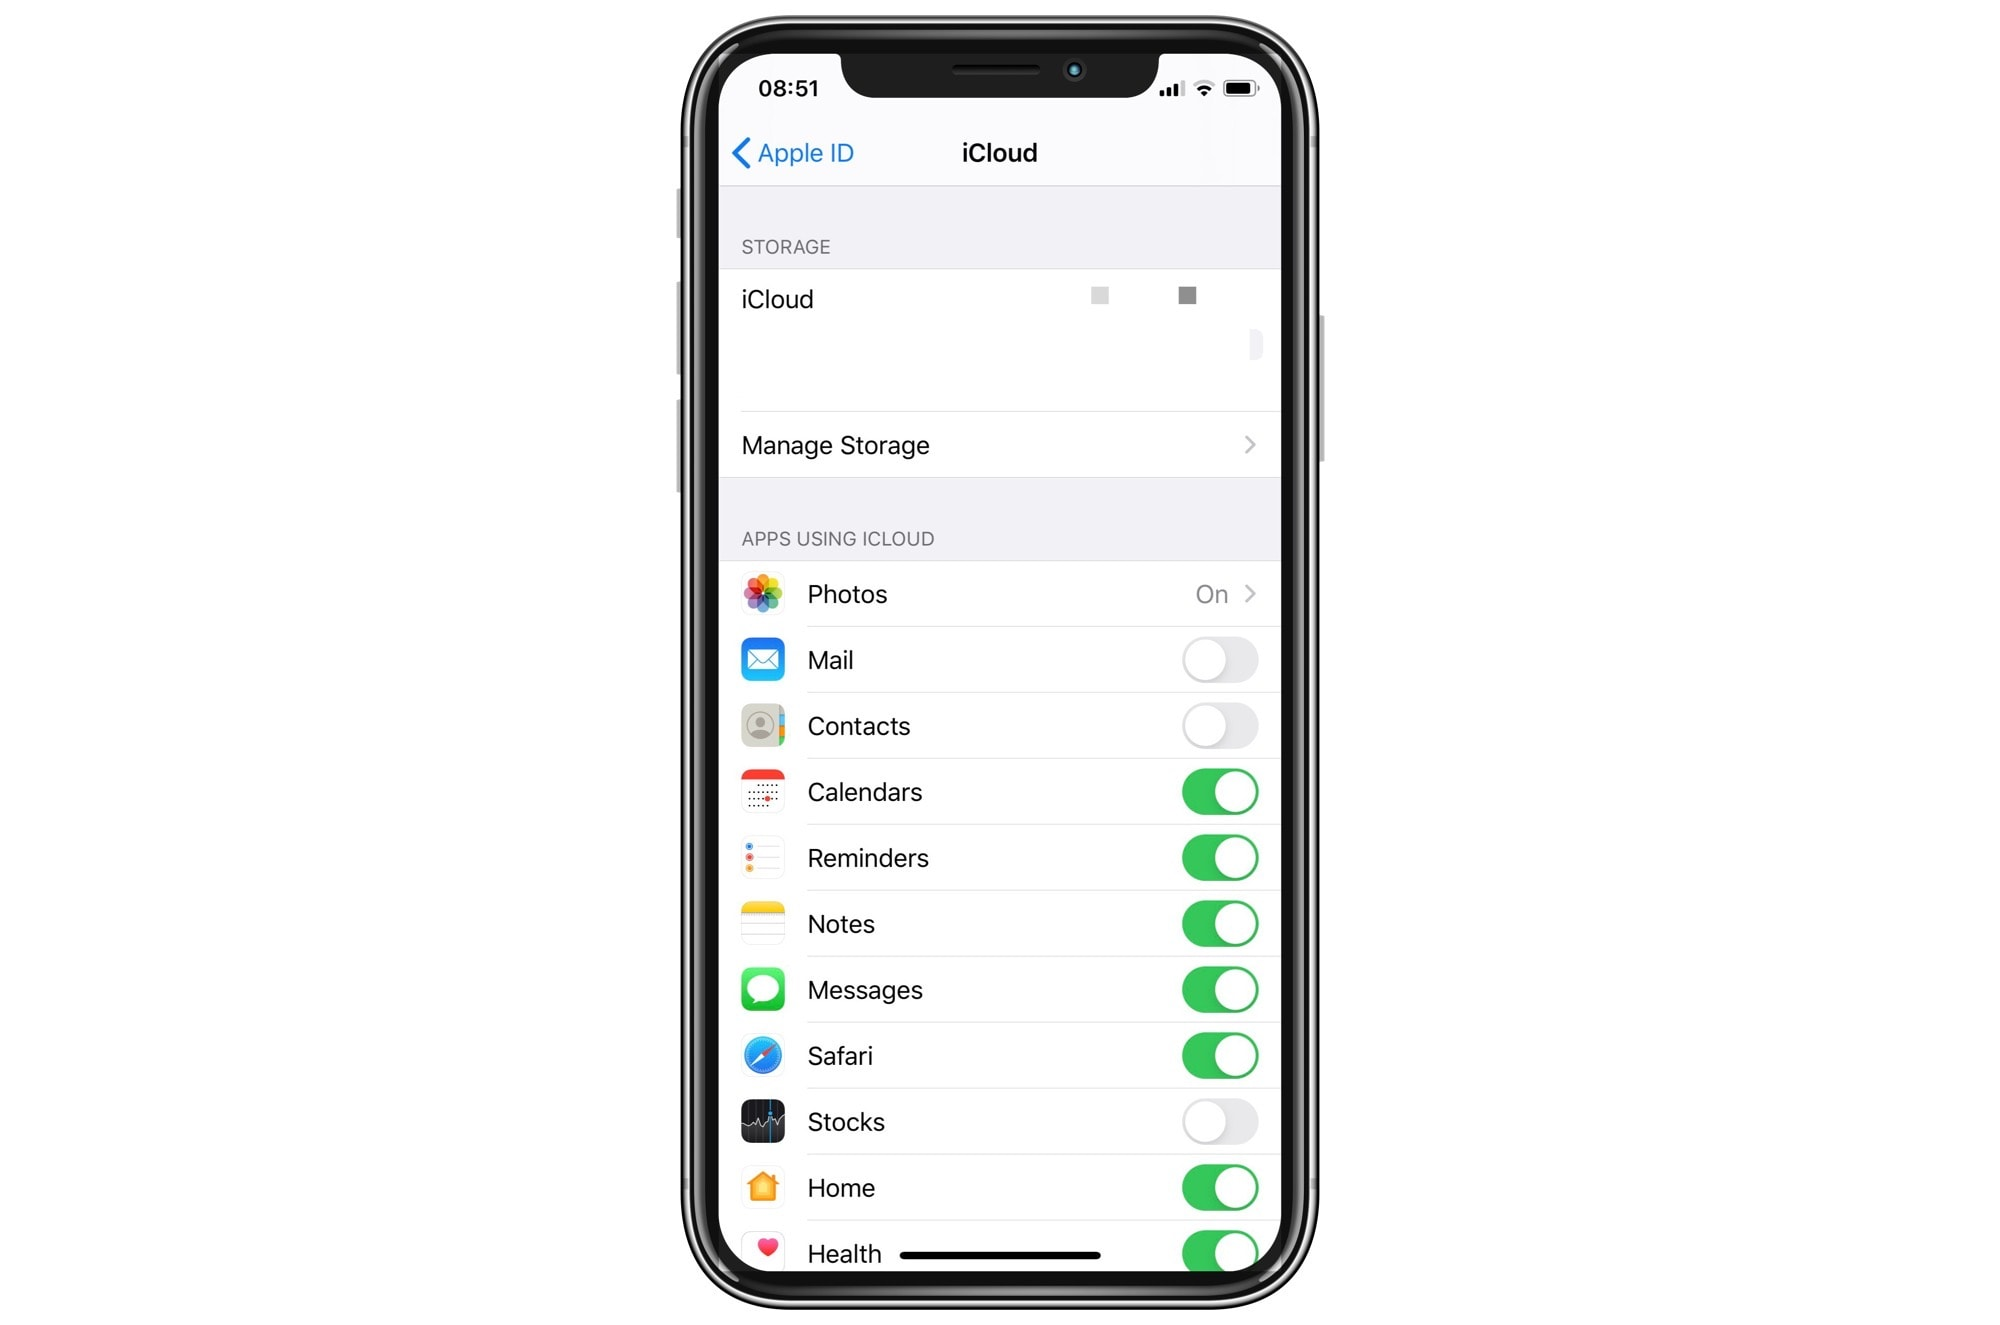 Find your iCloud backups in the Settings app.